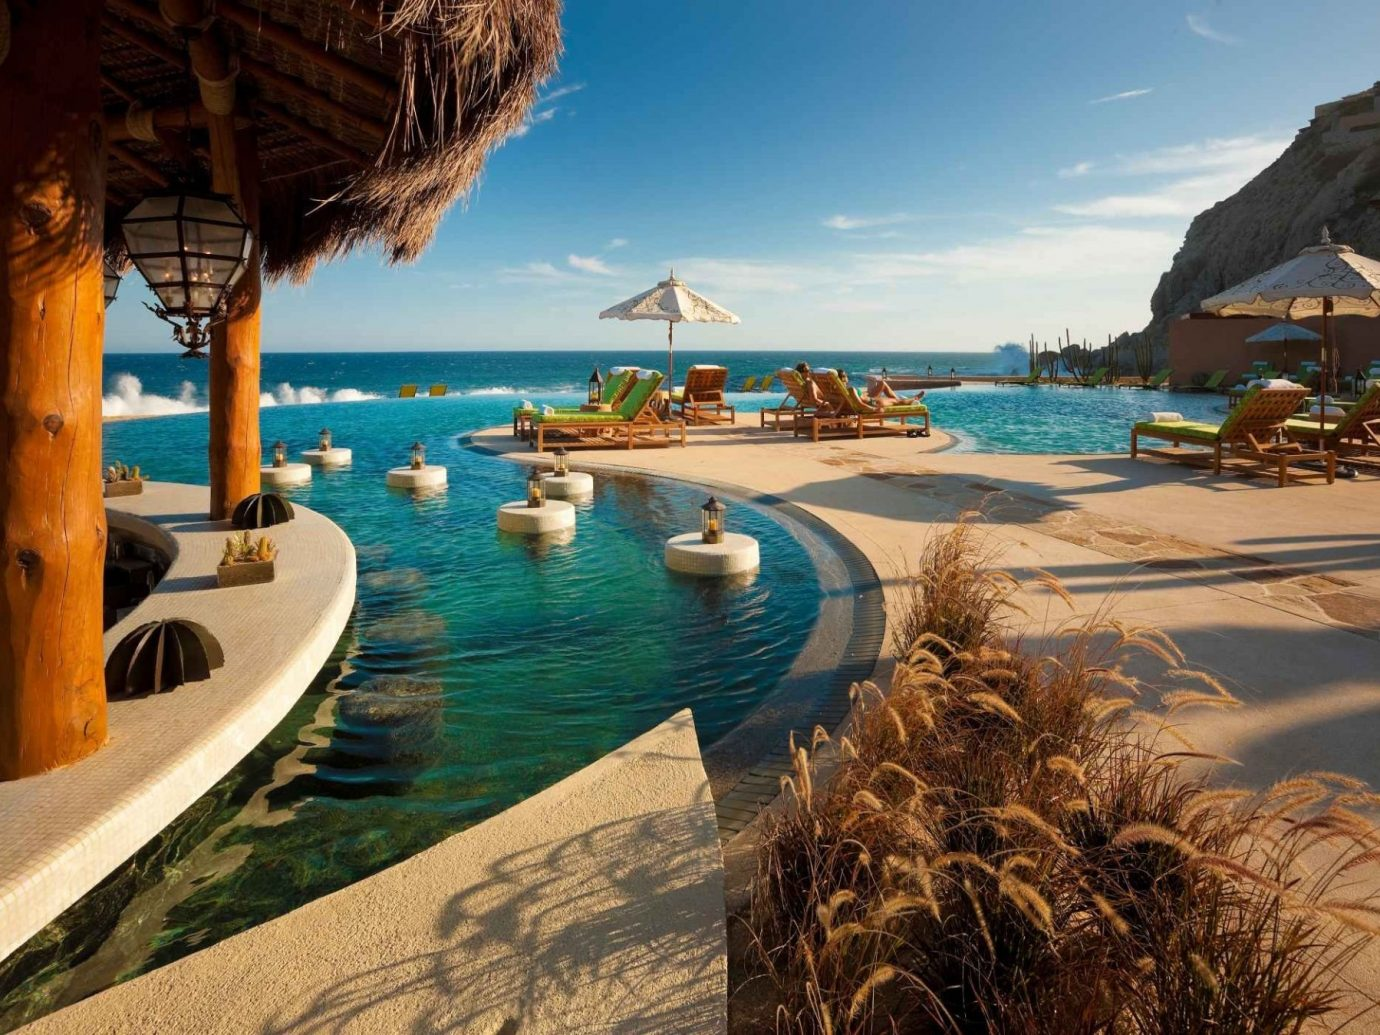 Infinity Pool At The Resort At Pedregal In Mexico